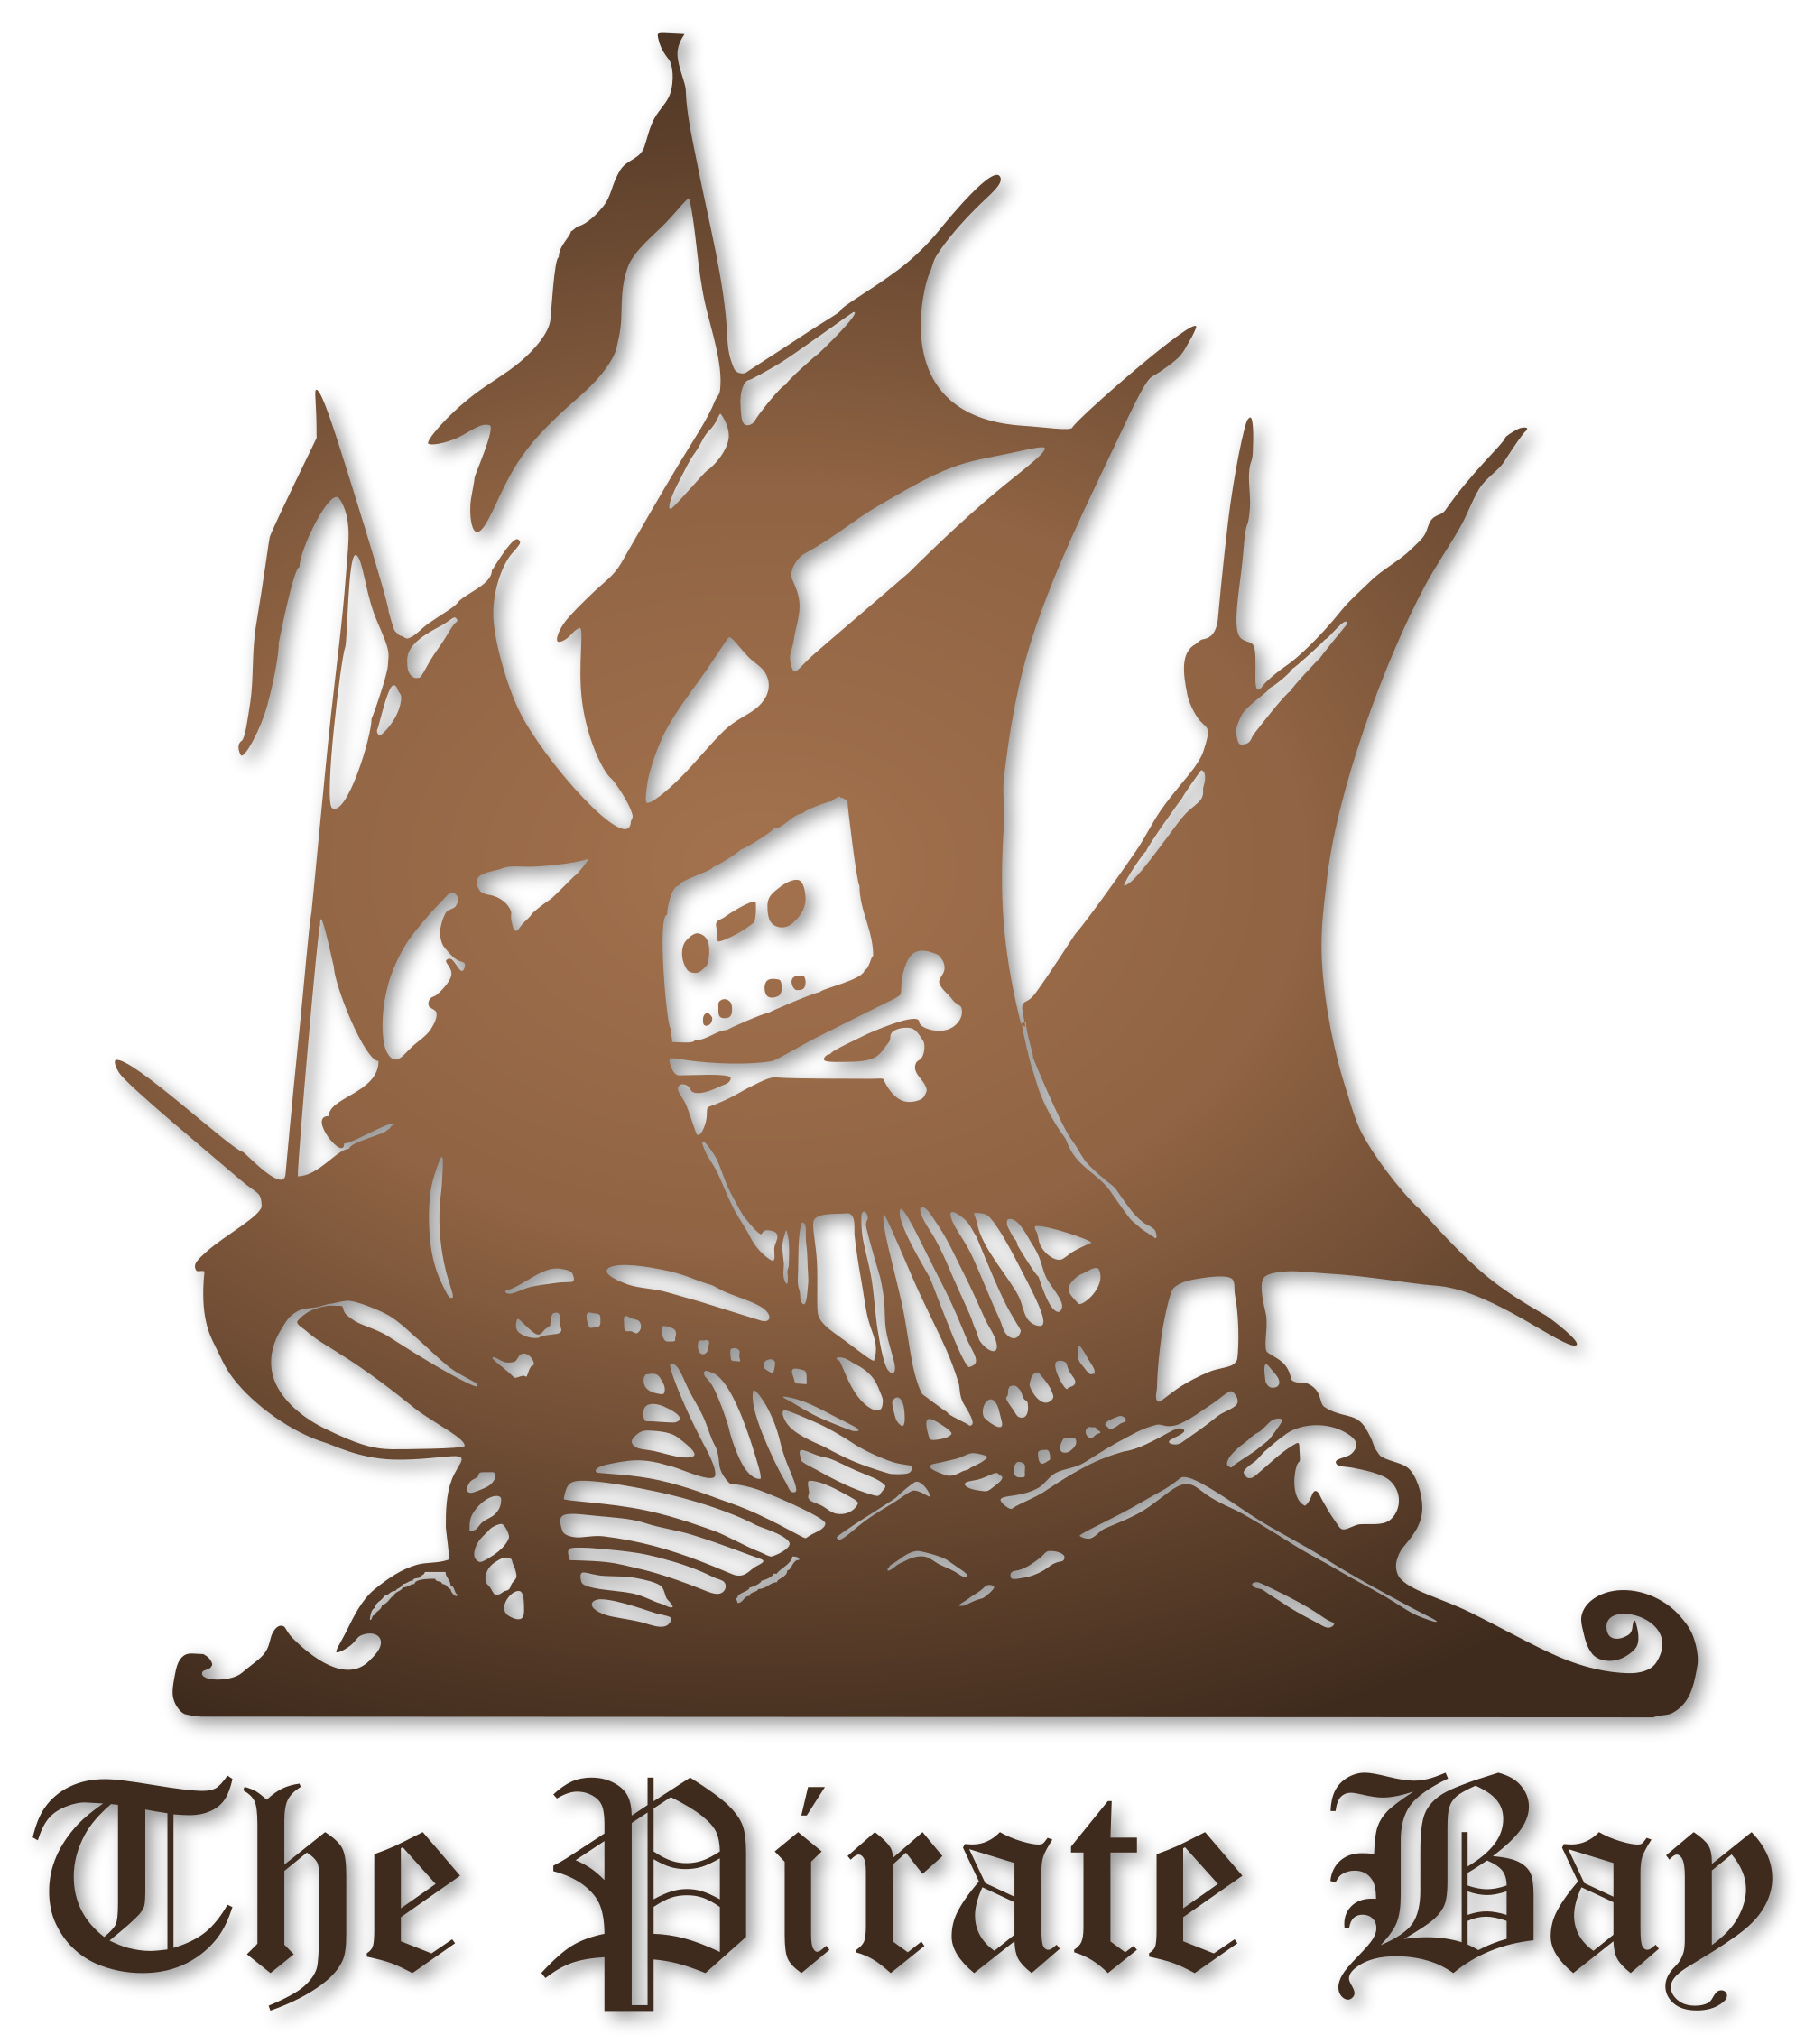 Pirate Bay is back online